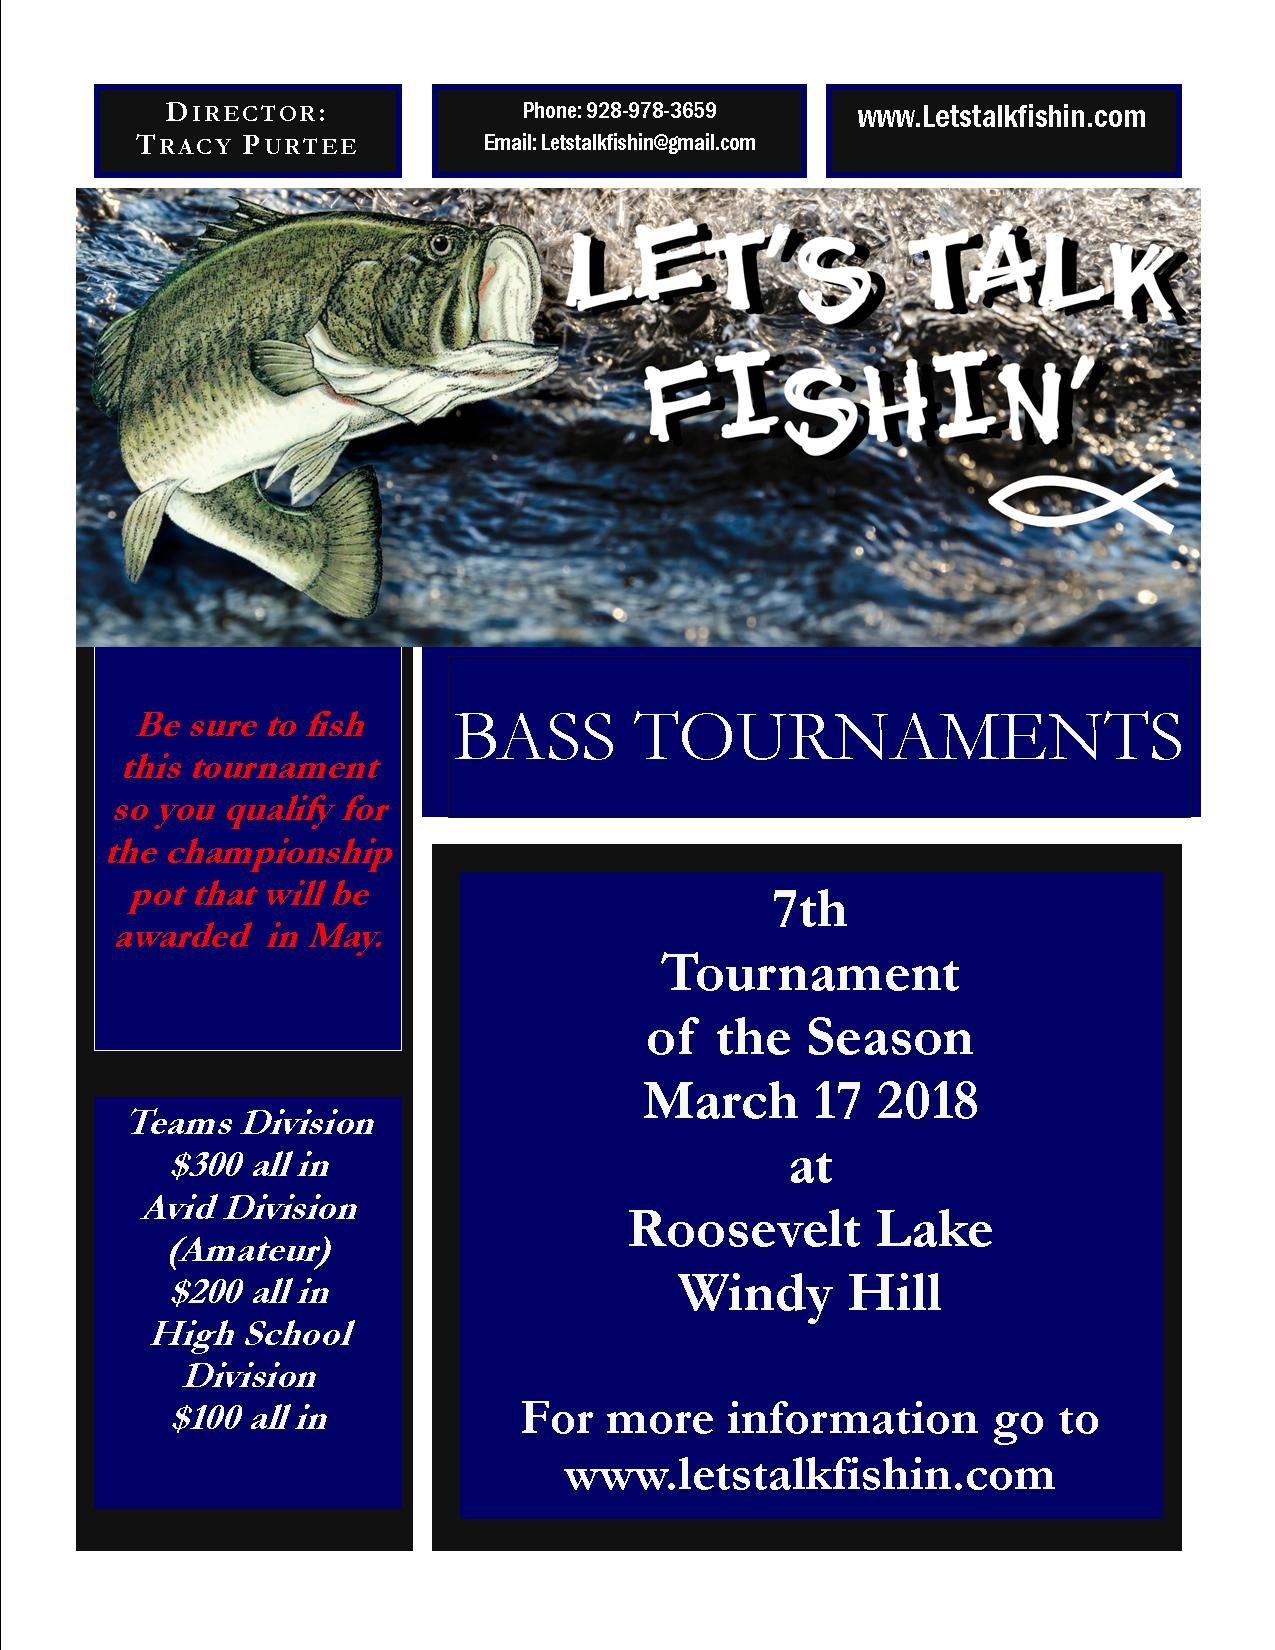 Click image for larger version  Name:7th Tournament.jpg Views:1786 Size:283.6 KB ID:96826